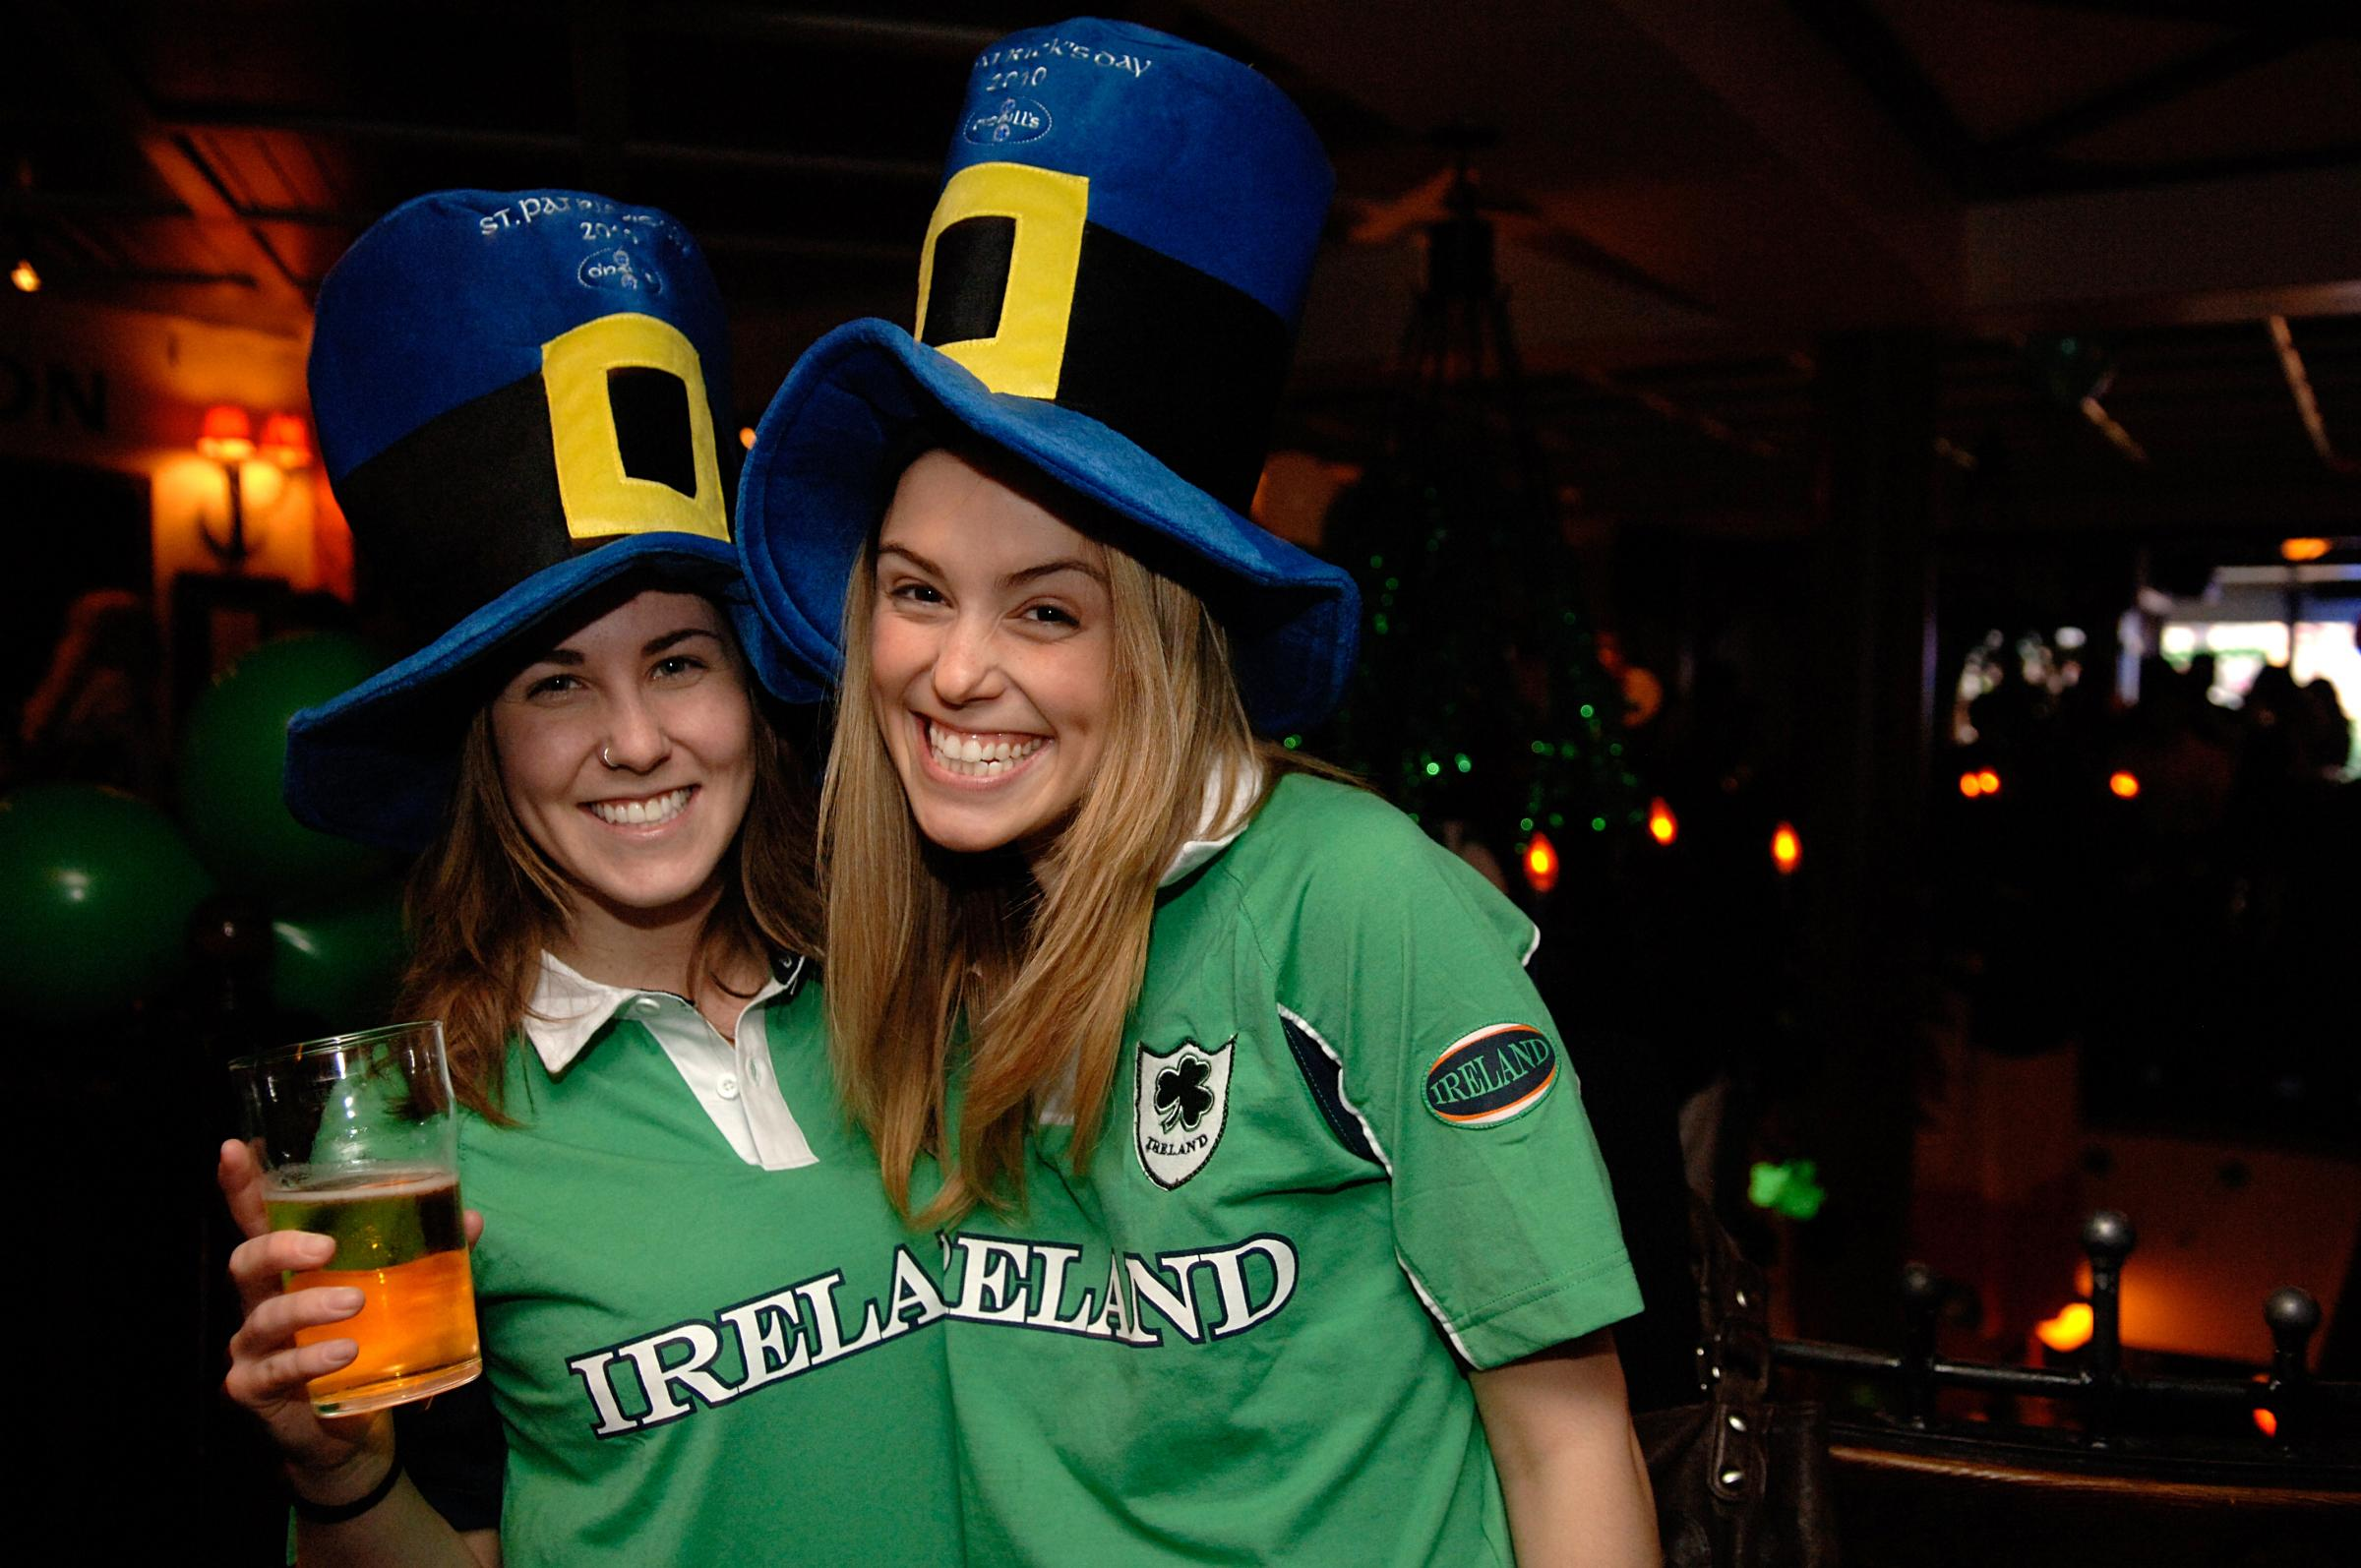 Pubs across south-east London celebrate St Patrick's Day weekend with more to come